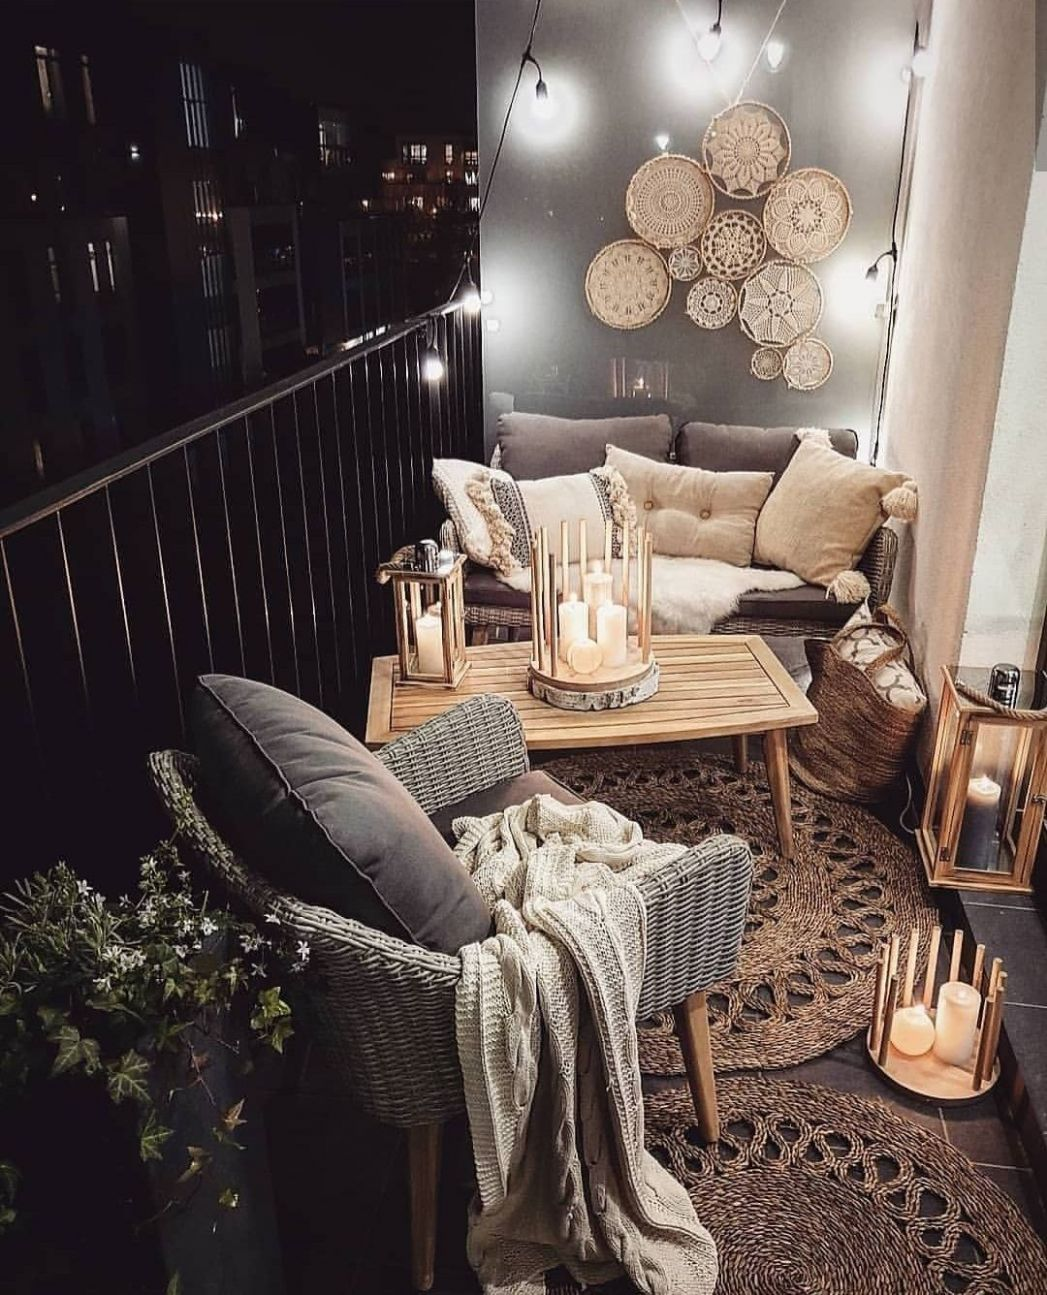 The Best Decorated Small Outdoor Balconies on Pinterest | First ..